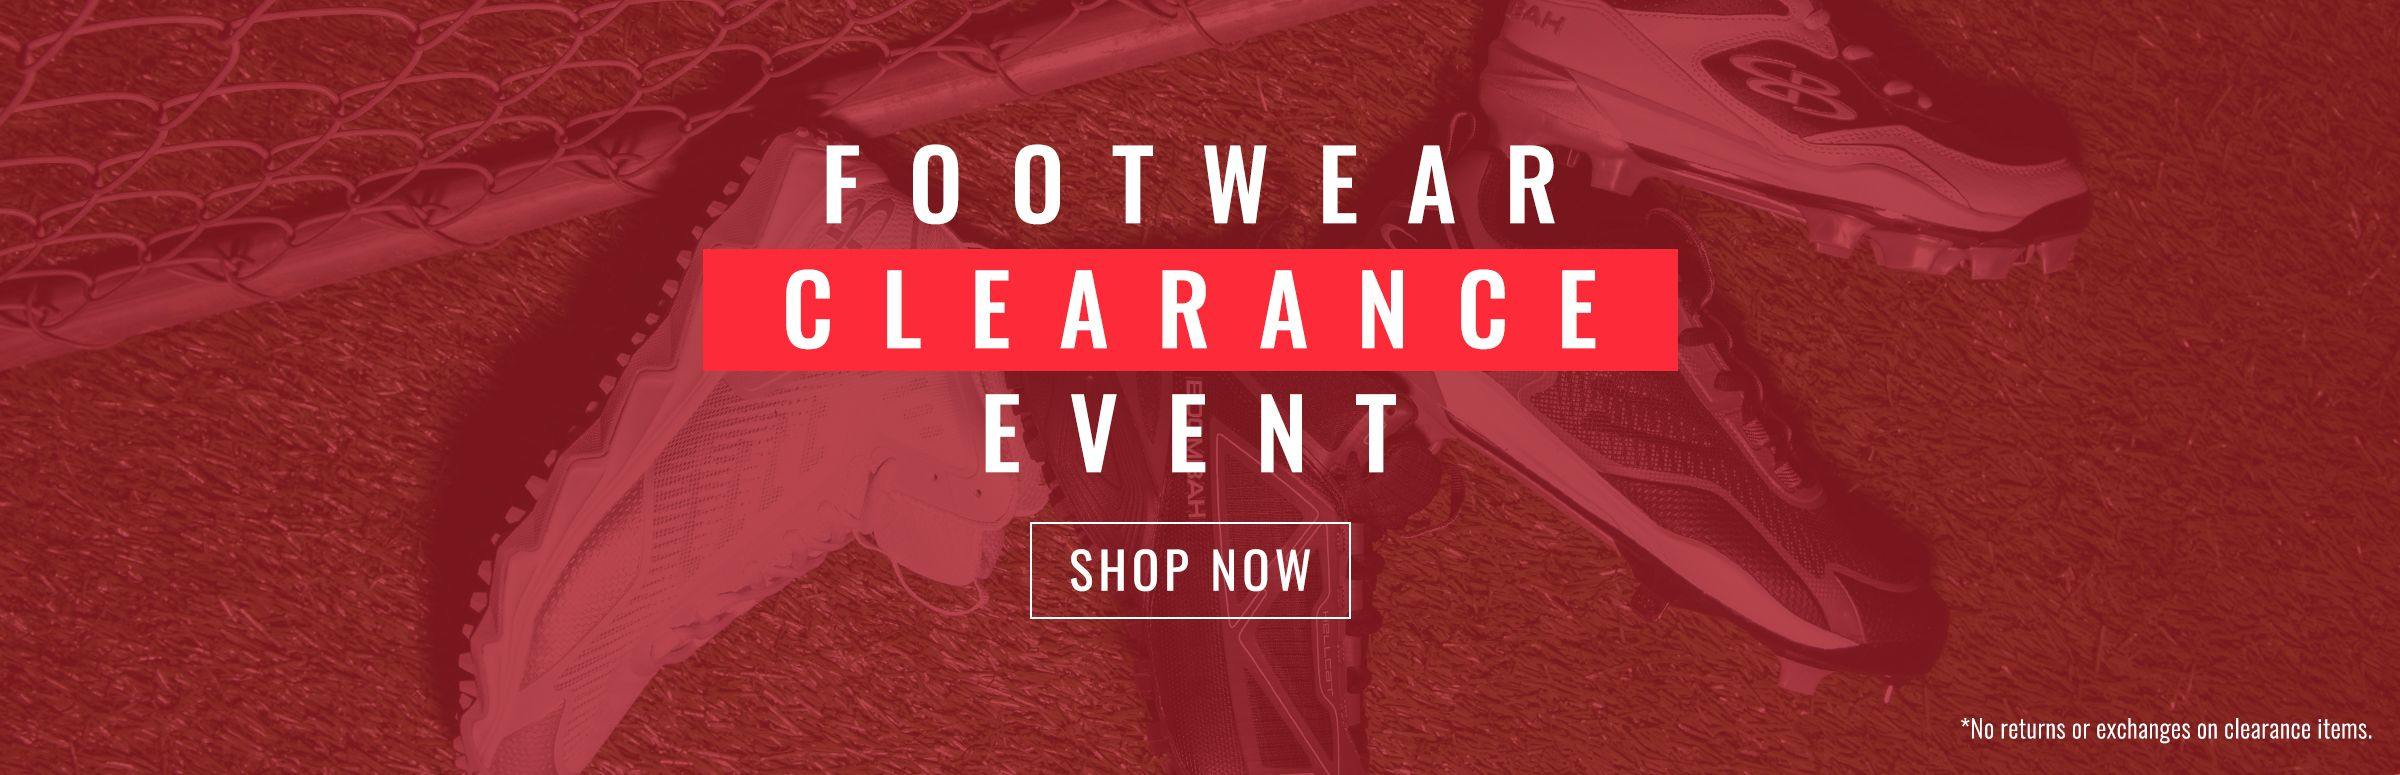 End of the Year Footwear Clearance Event